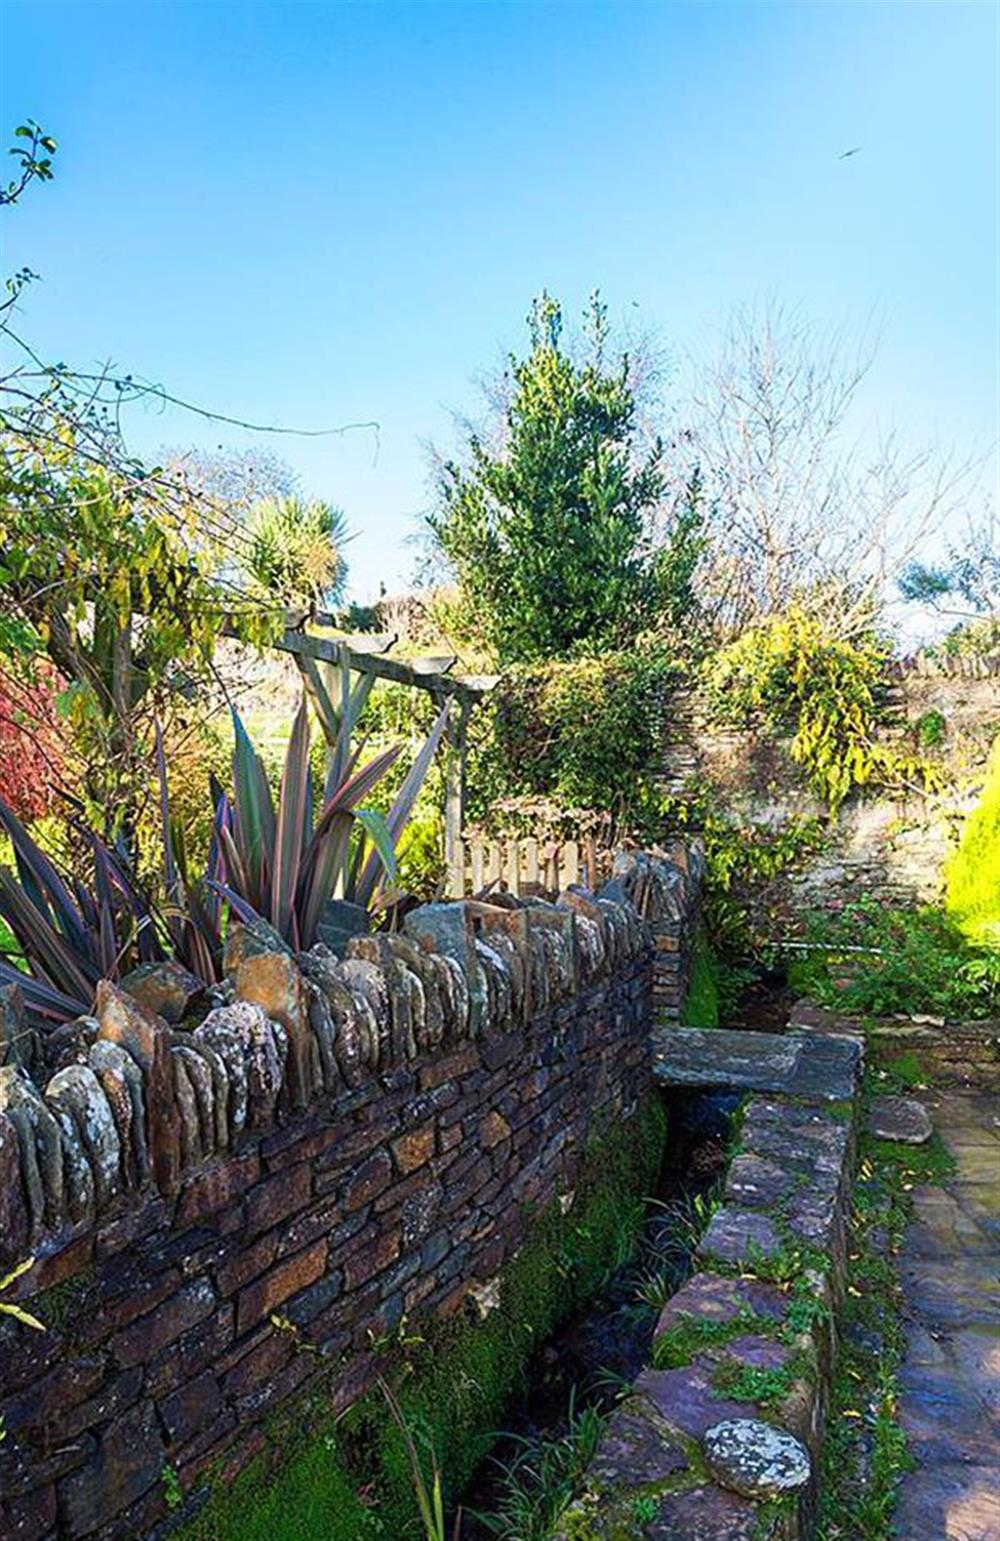 Part of the garden at Rill House at Rill House, Slapton